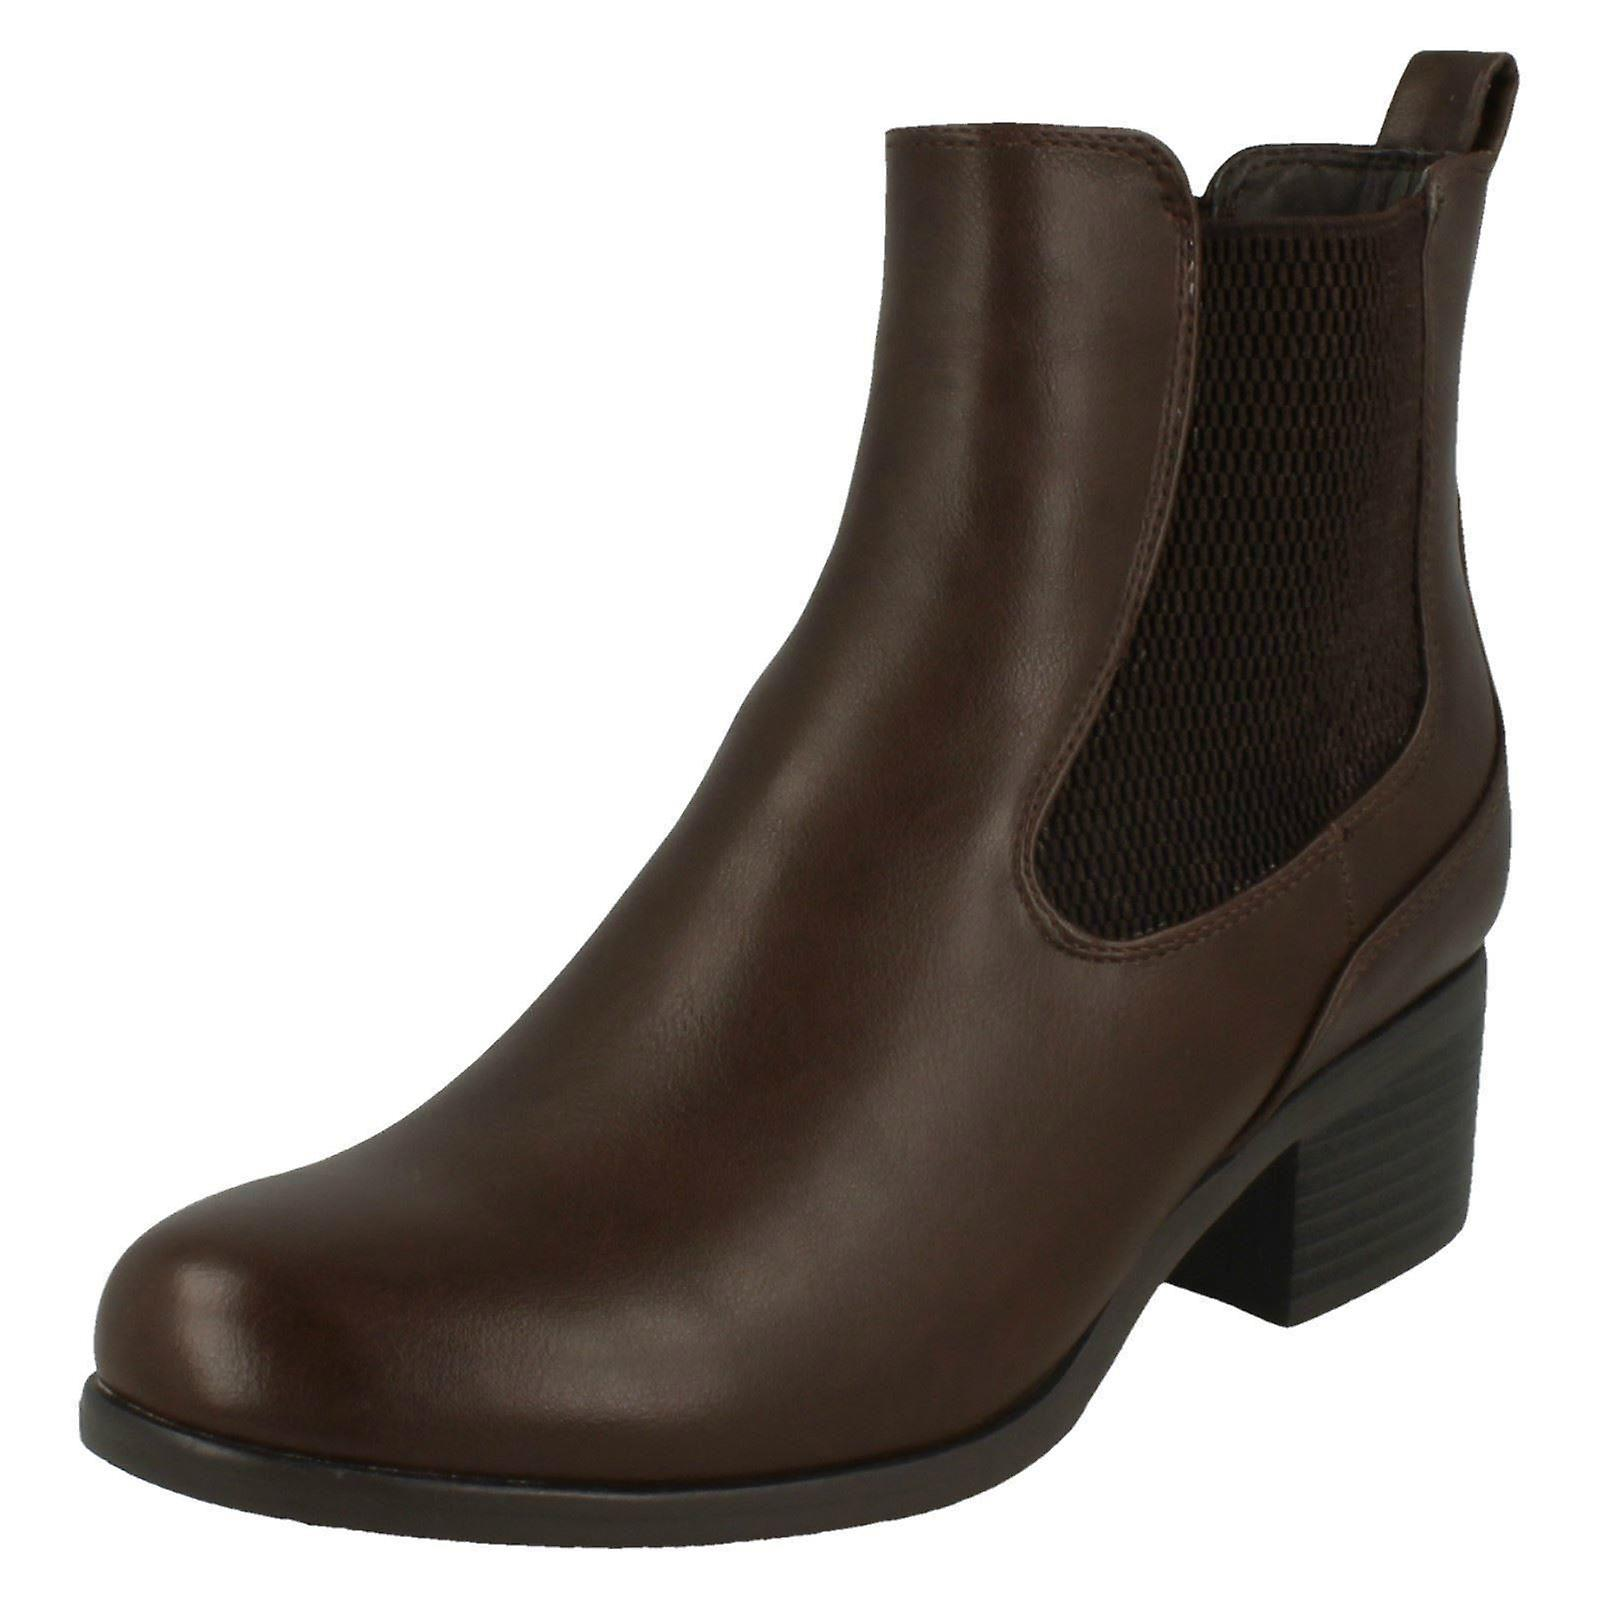 Ladies Down To Earth Chelsea Boots F50575 h6Kk6